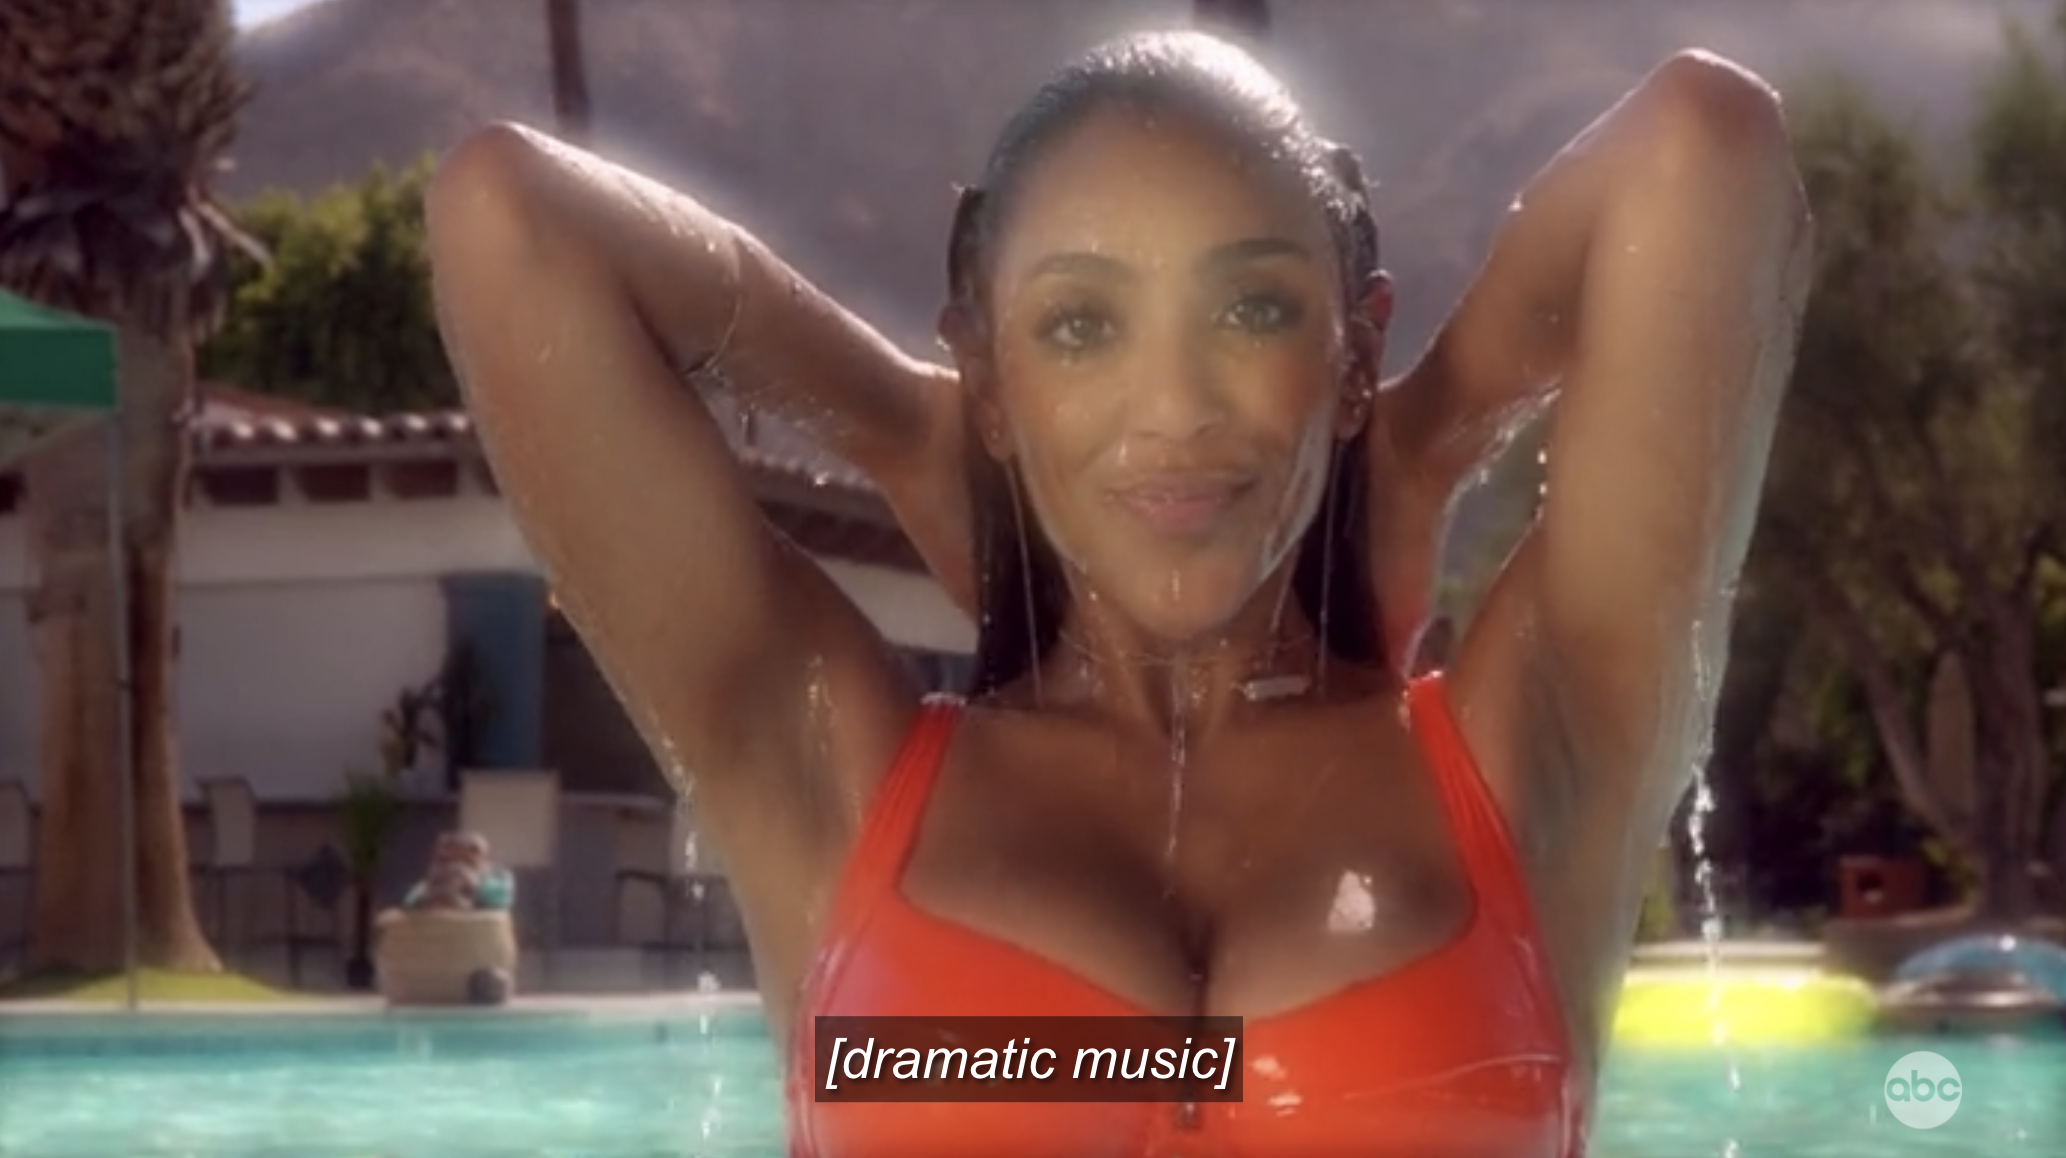 Tayshia gloriously rising out of a pool